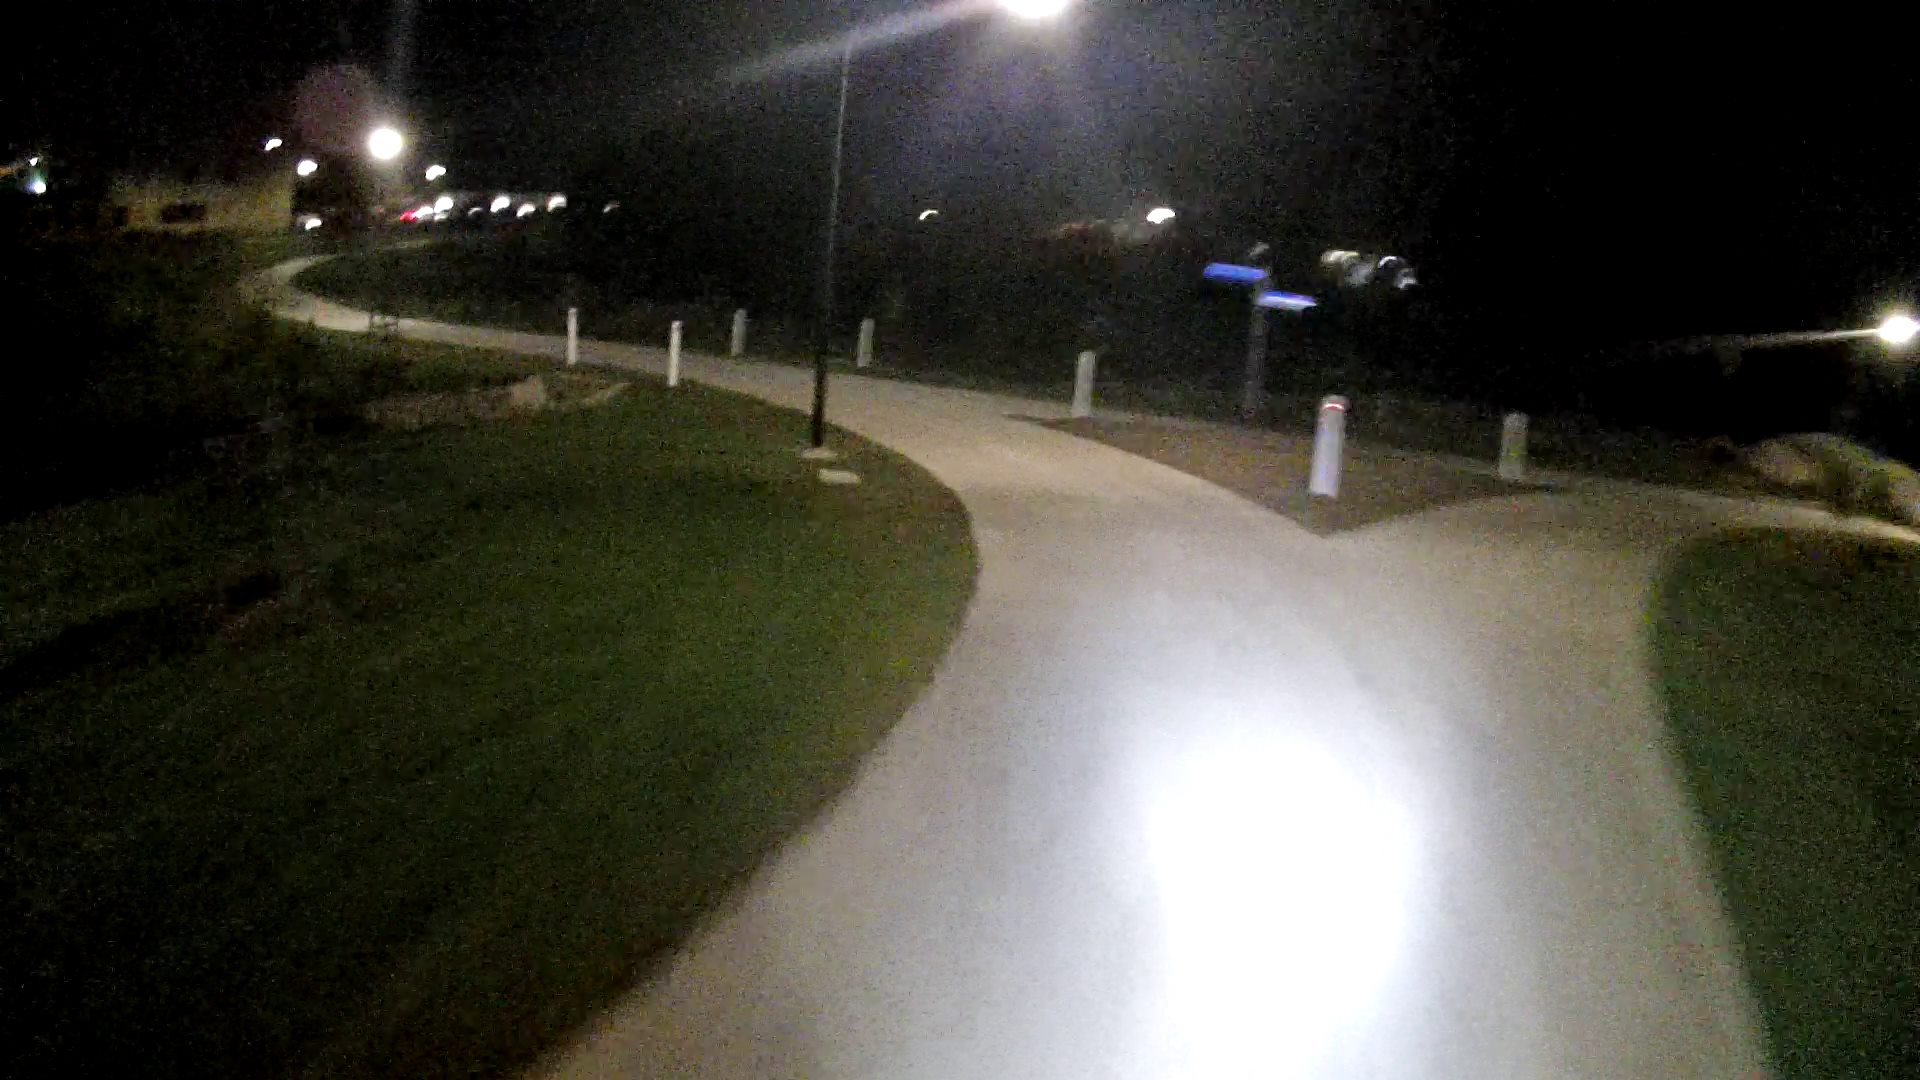 ... 2017 Newsletter for residents in the western suburbs an article on page 5 u201cBetter bikeway for Staffordu201d refers to seven new LED lights placed along a ... & Kedron Brook Bikeway Stafford u2013 Space for Cycling Brisbane azcodes.com